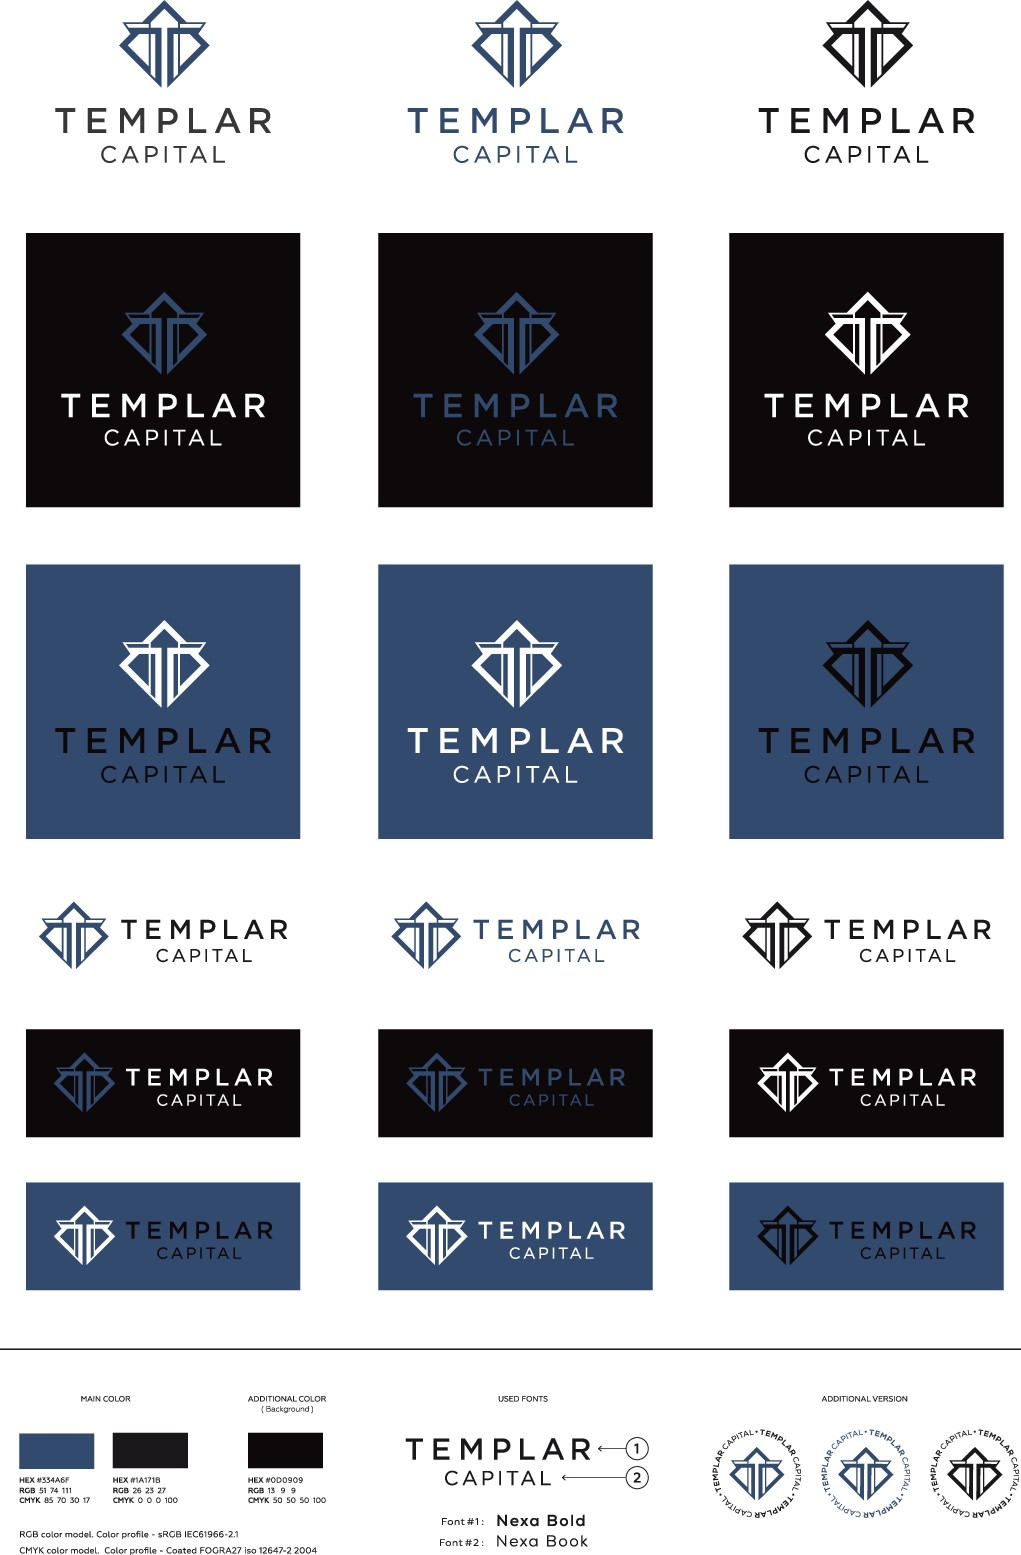 Help design a Solid Clean Logo in the Financial Sector with a Medieval theme.